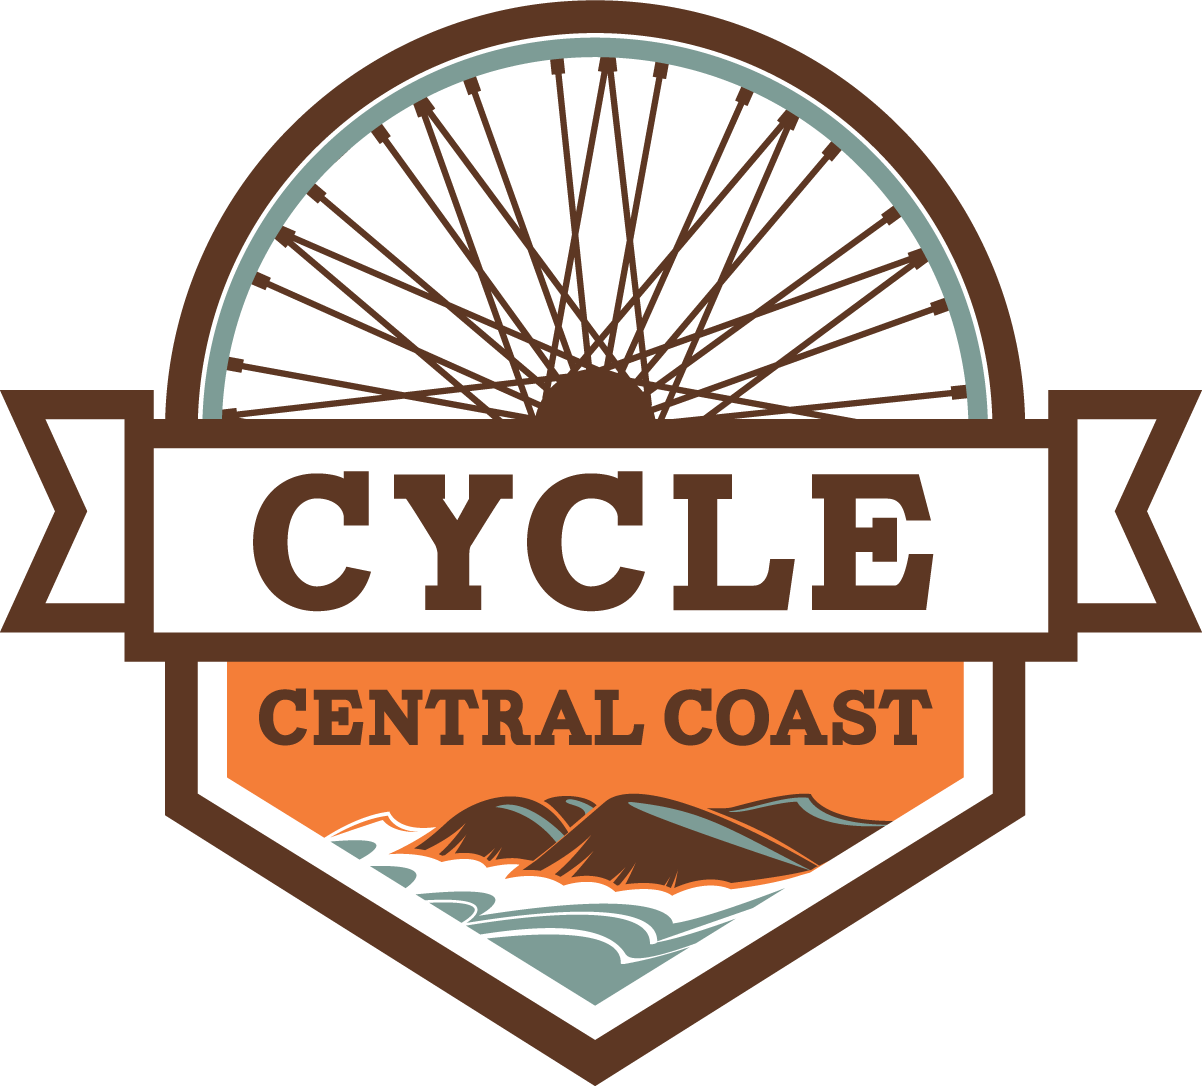 cycle central coast logo